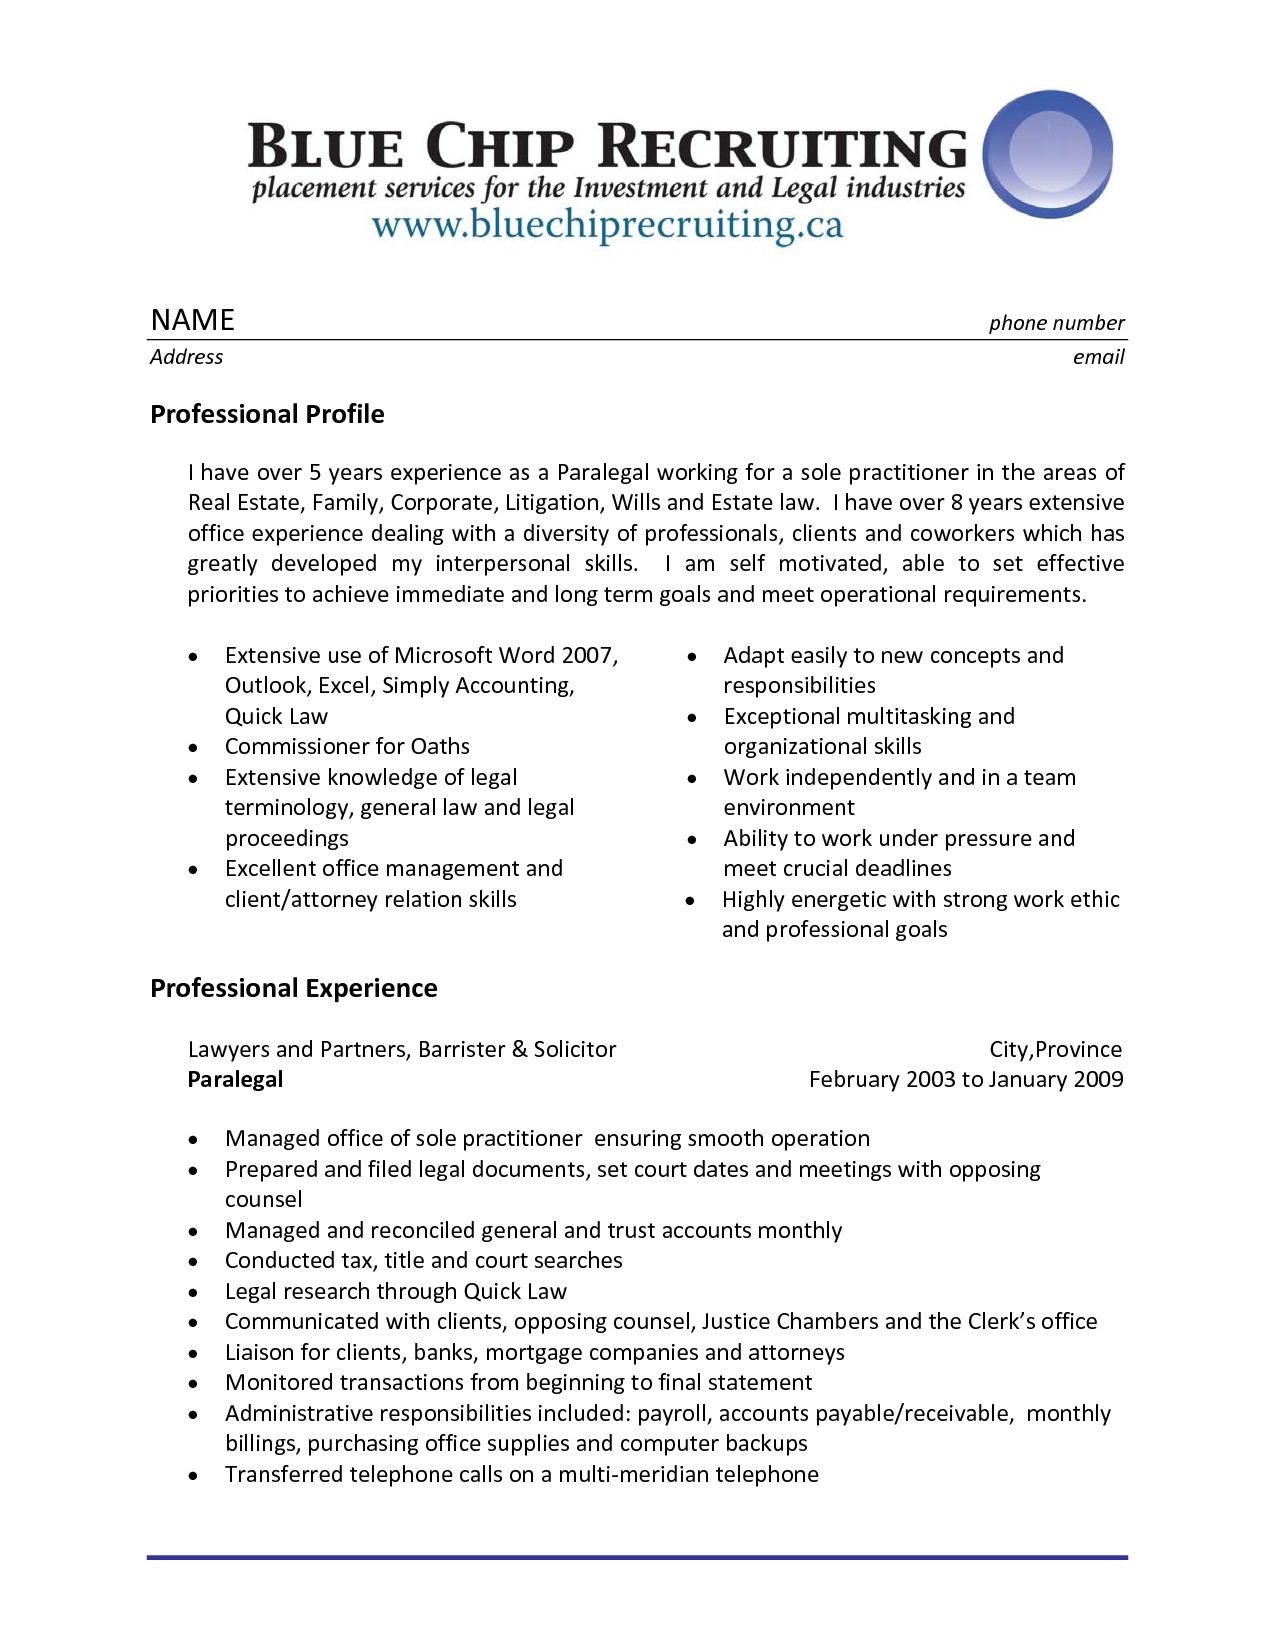 sample resume legal assistant experience professional paralegal professional profile